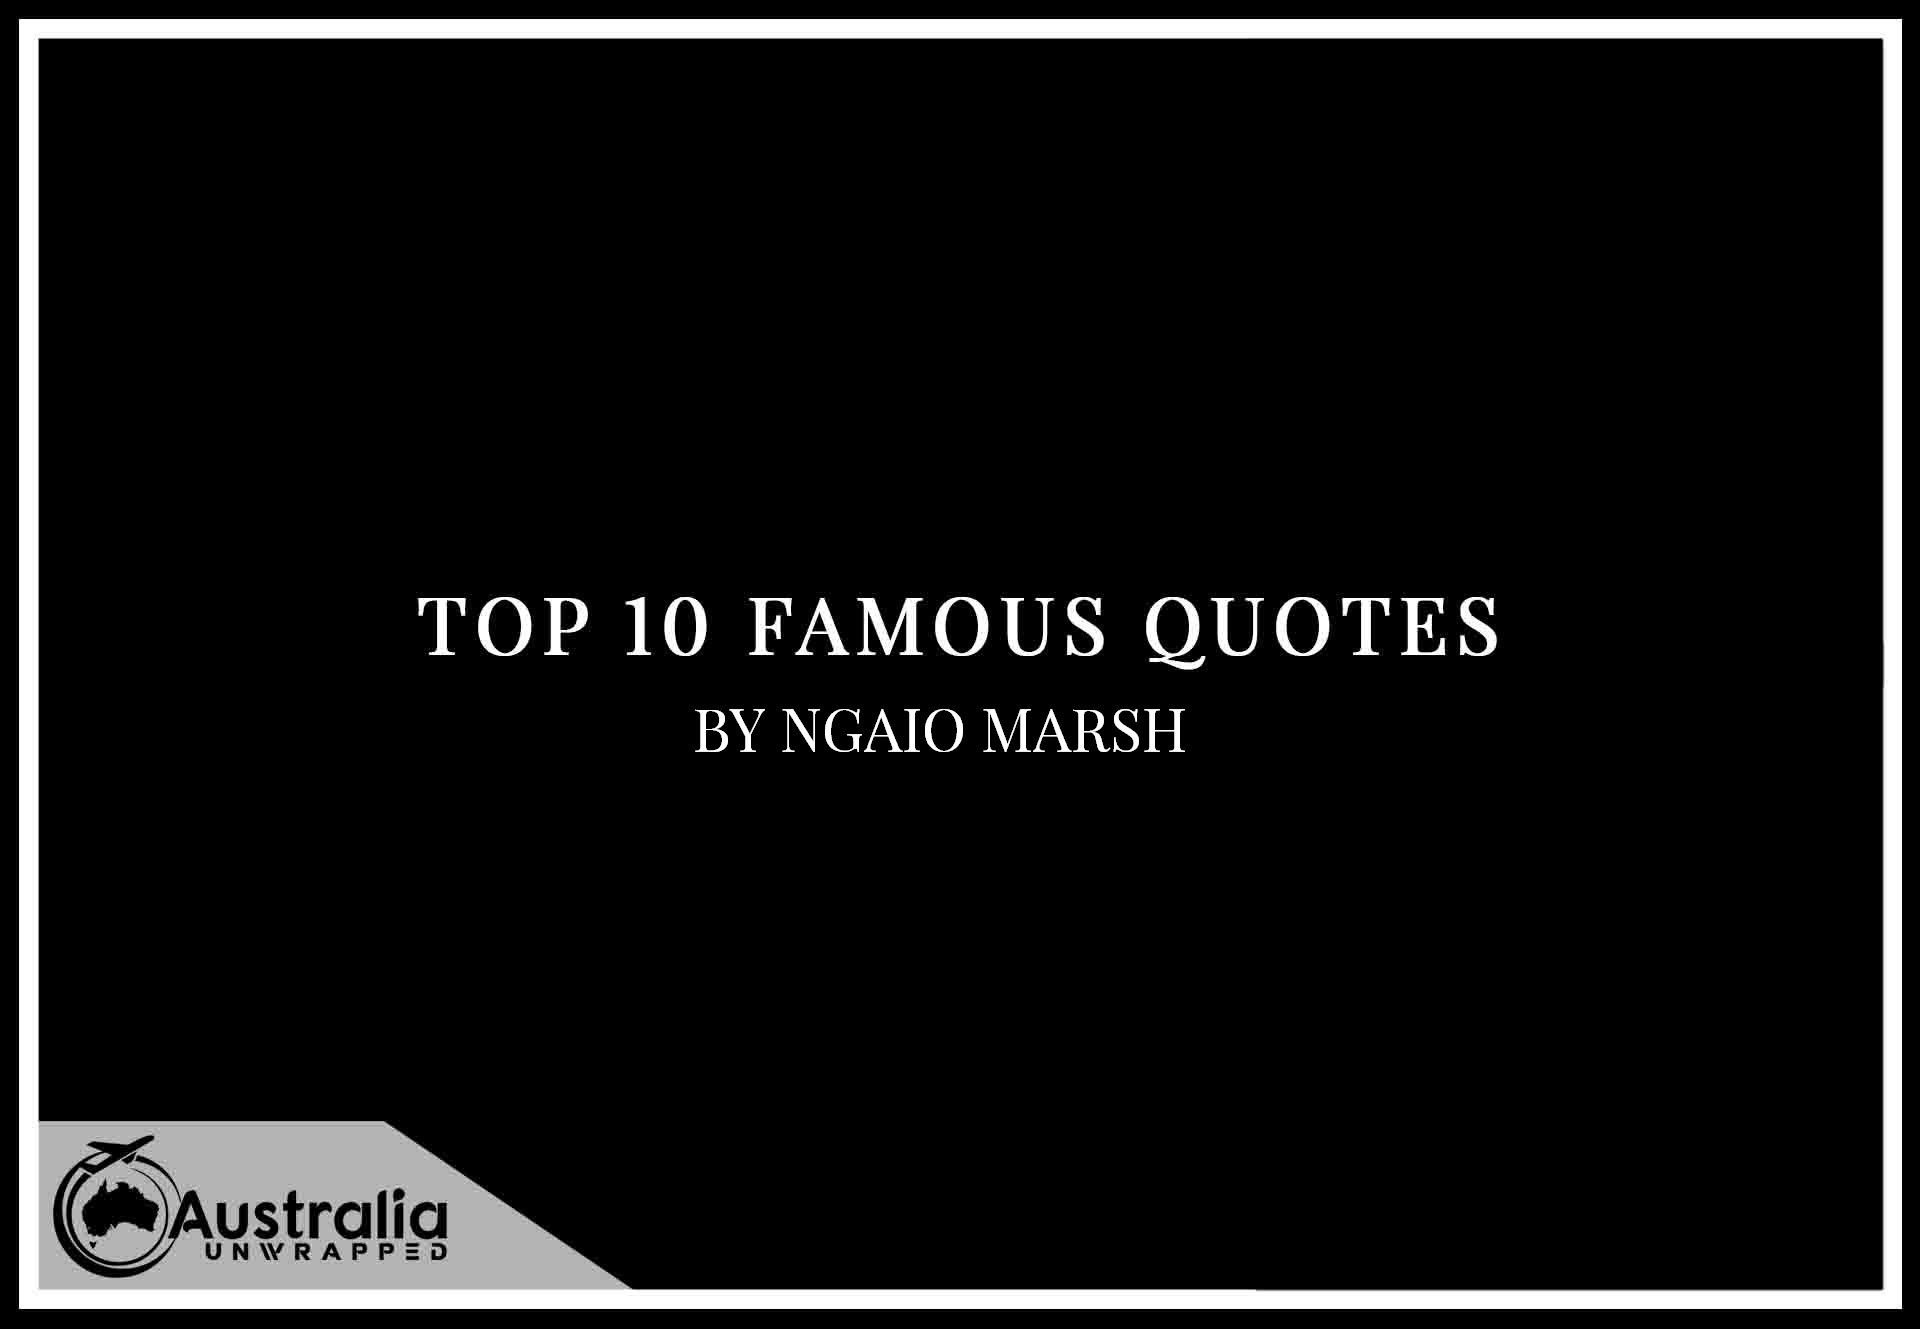 Top 10 Famous Quotes by Author Ngaio Marsh